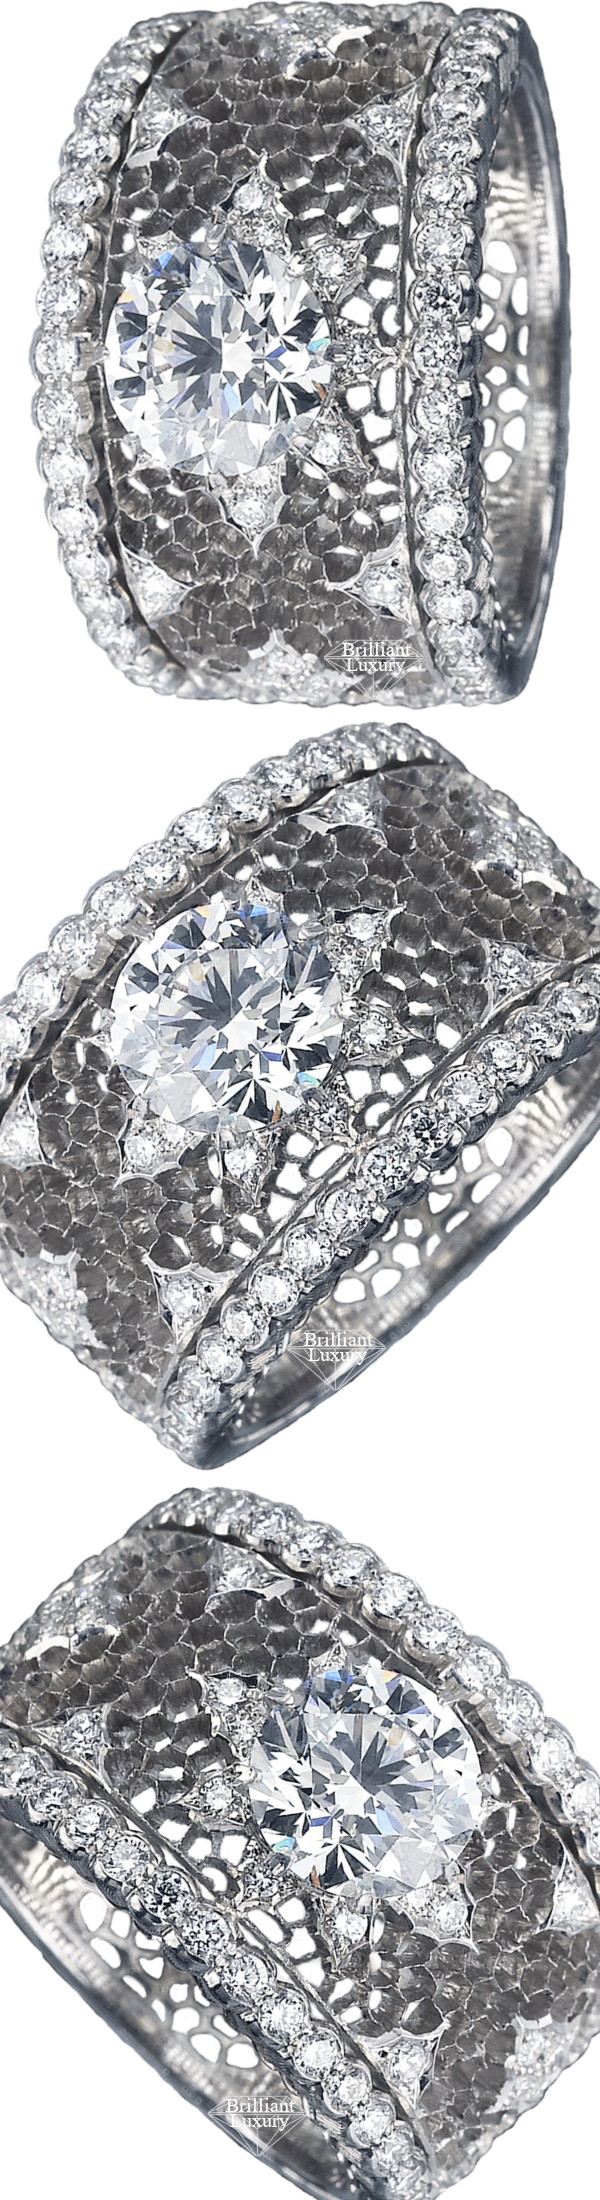 Buccellati Ginevra Ring #brilliantluxury